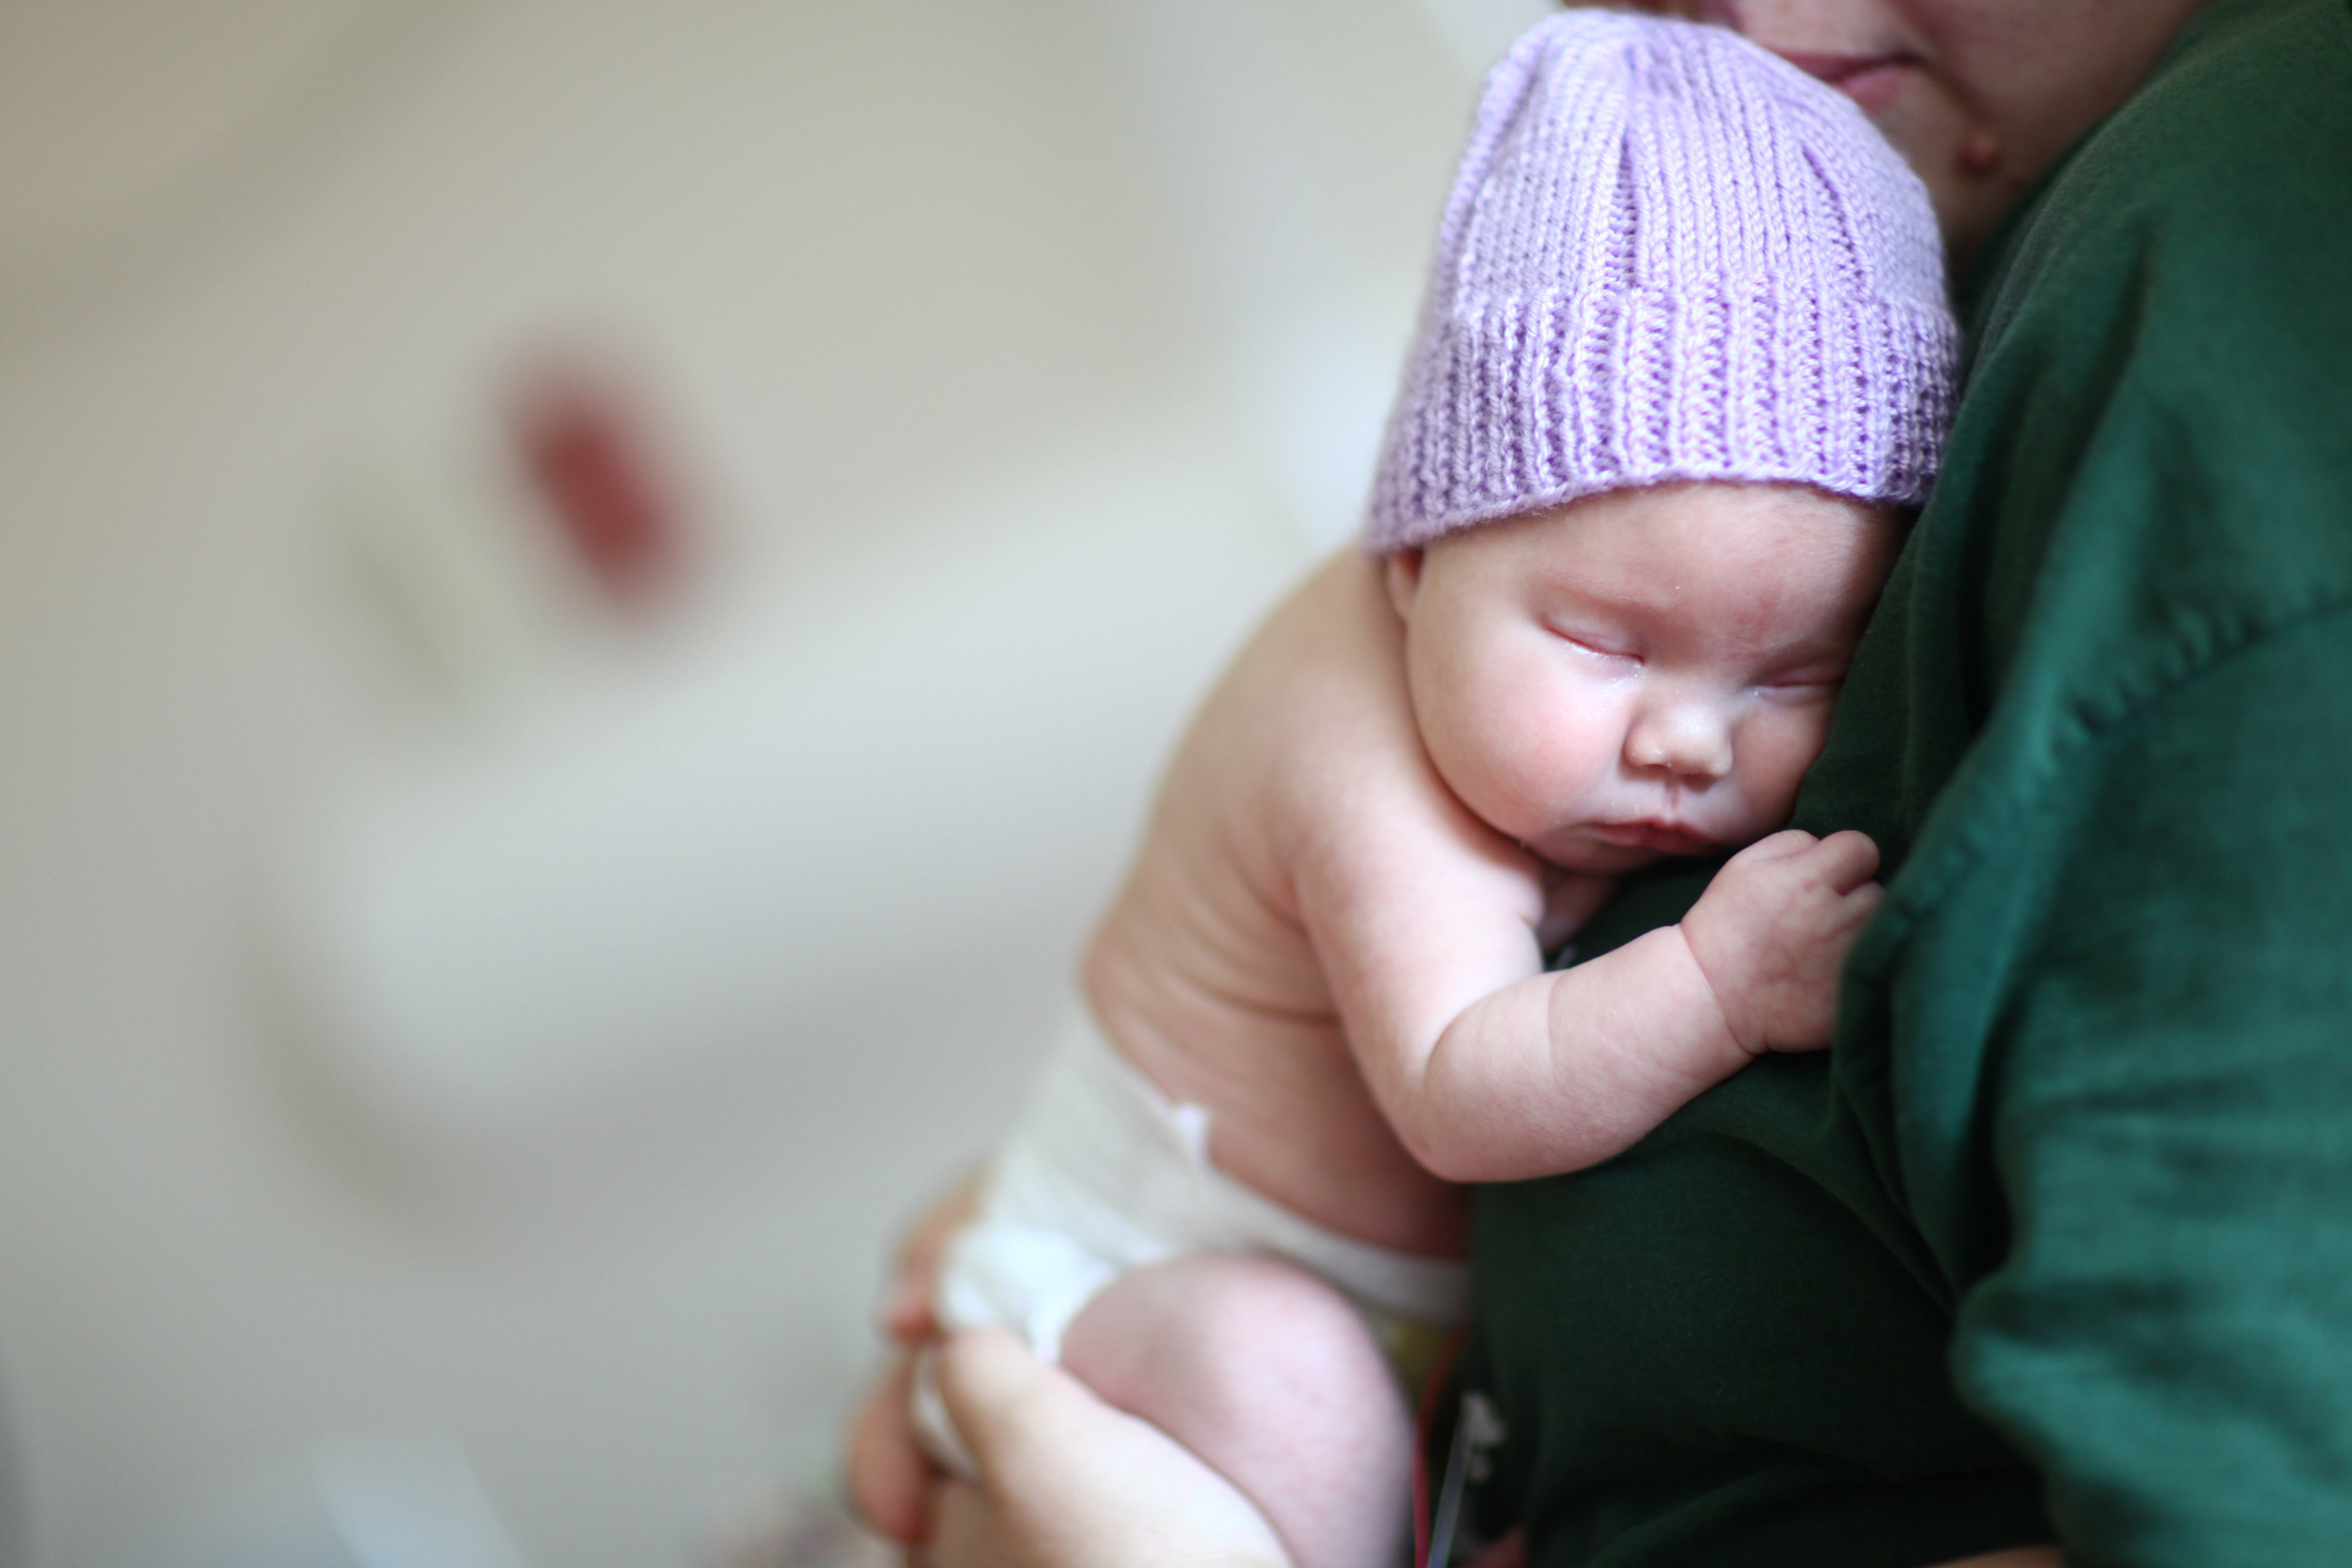 Swaddling babies can help with withdrawal symptoms, which babies may have if their mother took opioid drugs, such as prescription pain killers, while pregnant.